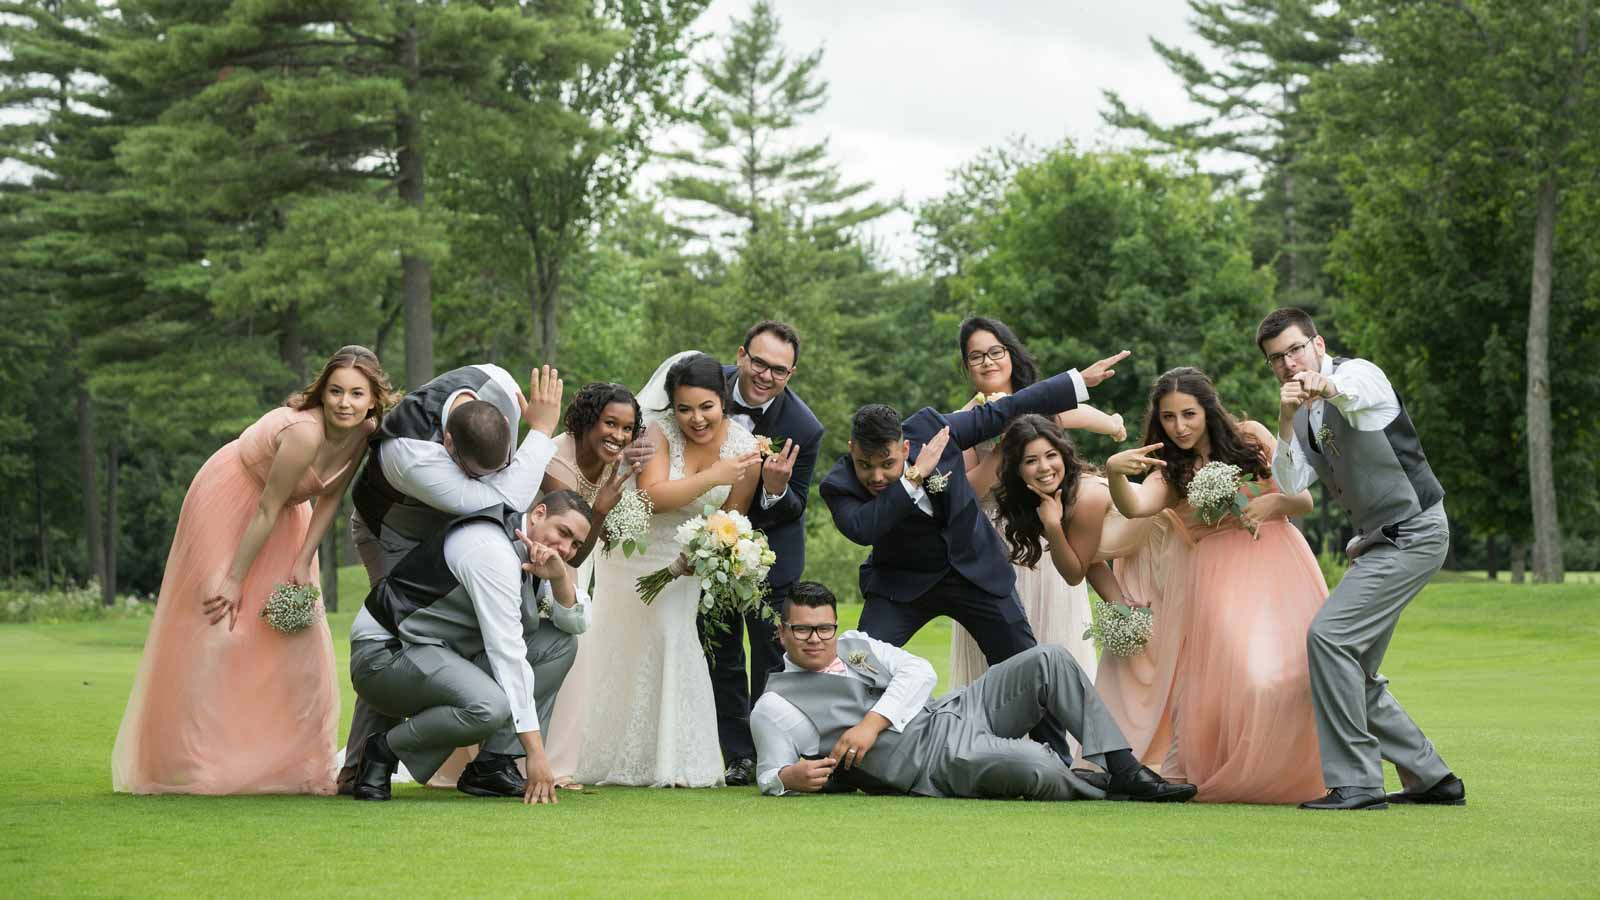 Group picture of bridal party